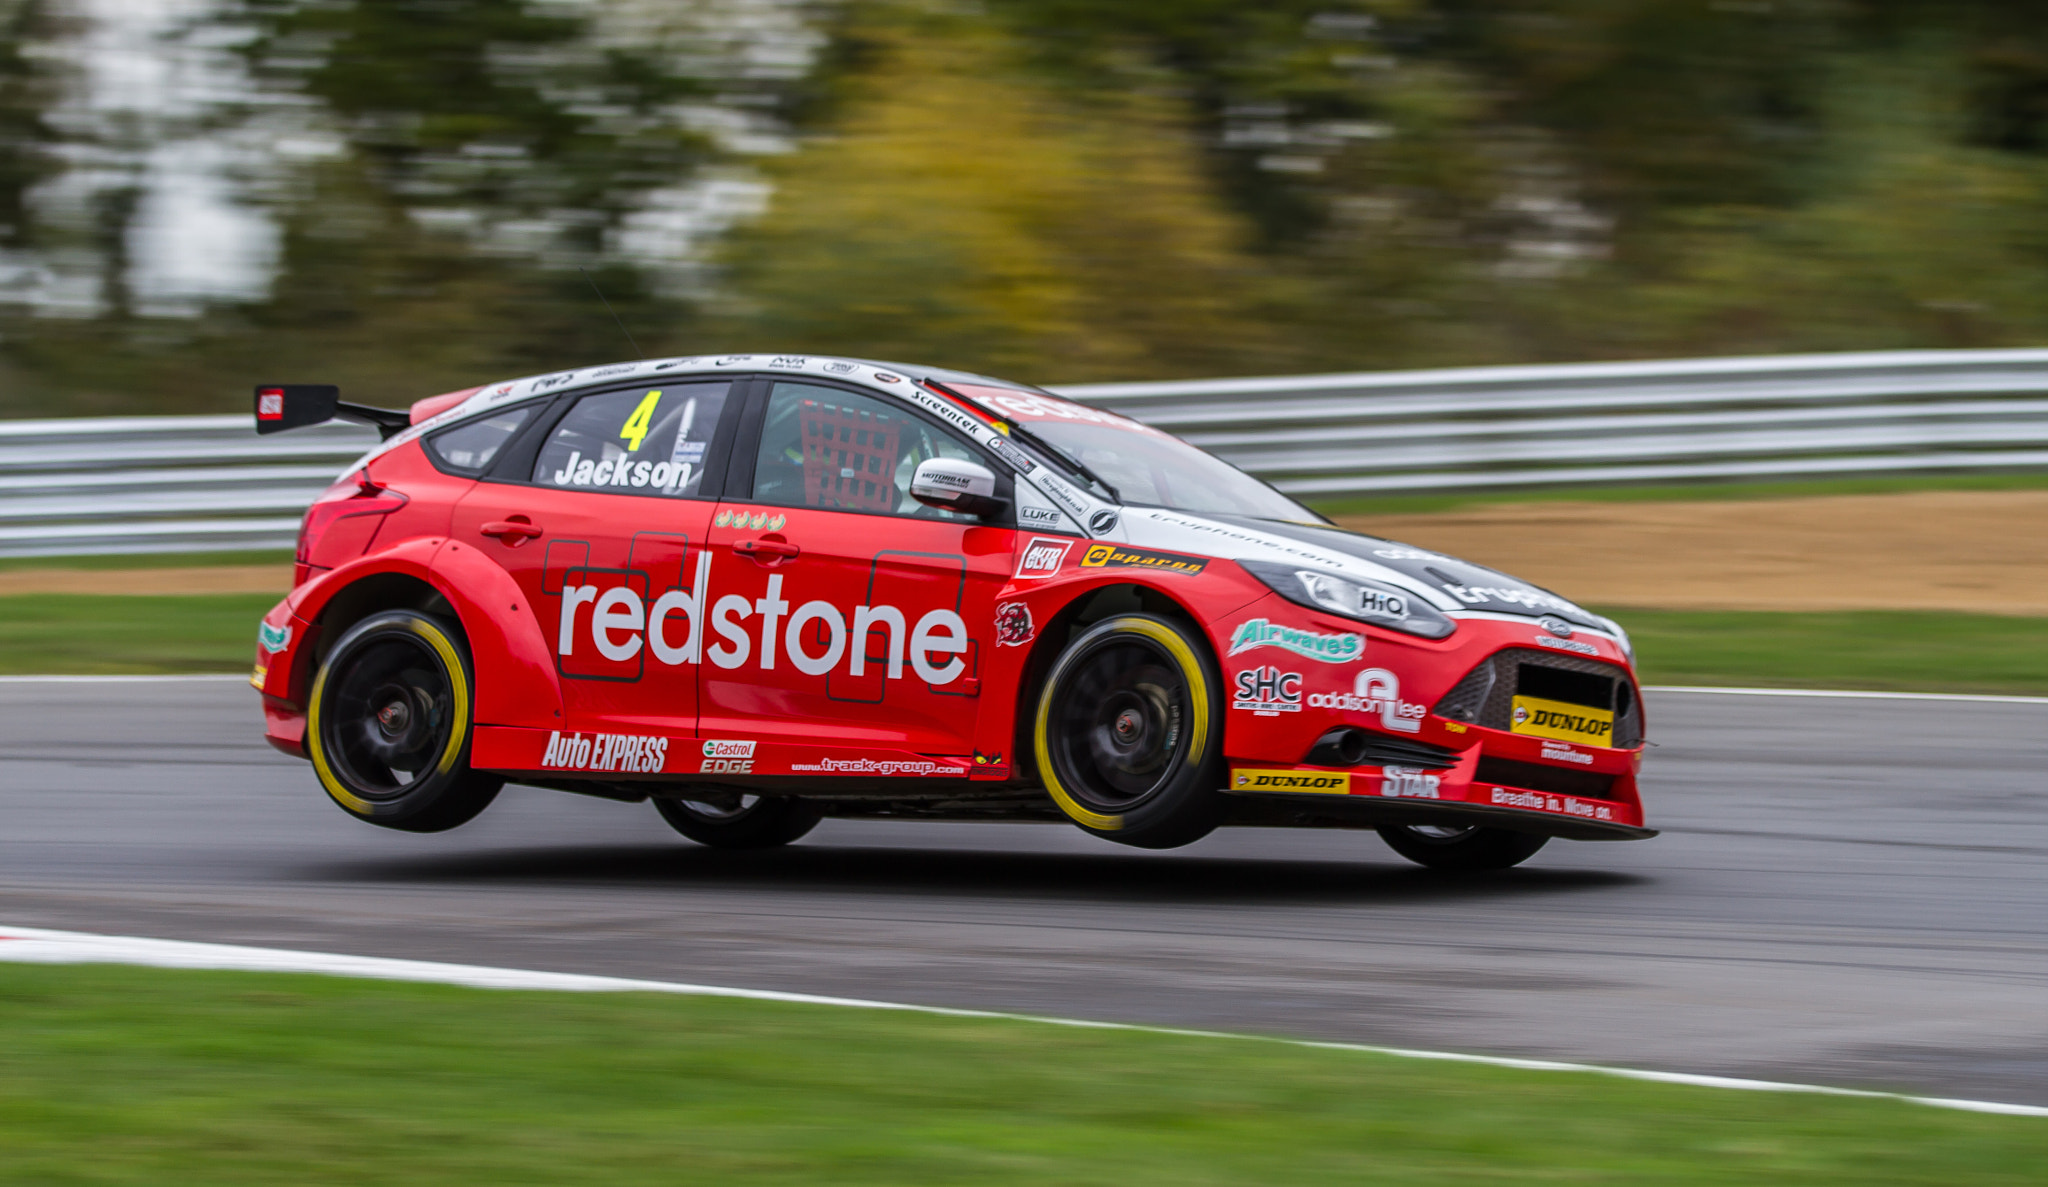 Photograph Redstone Racing by Andrew Wickens on 500px